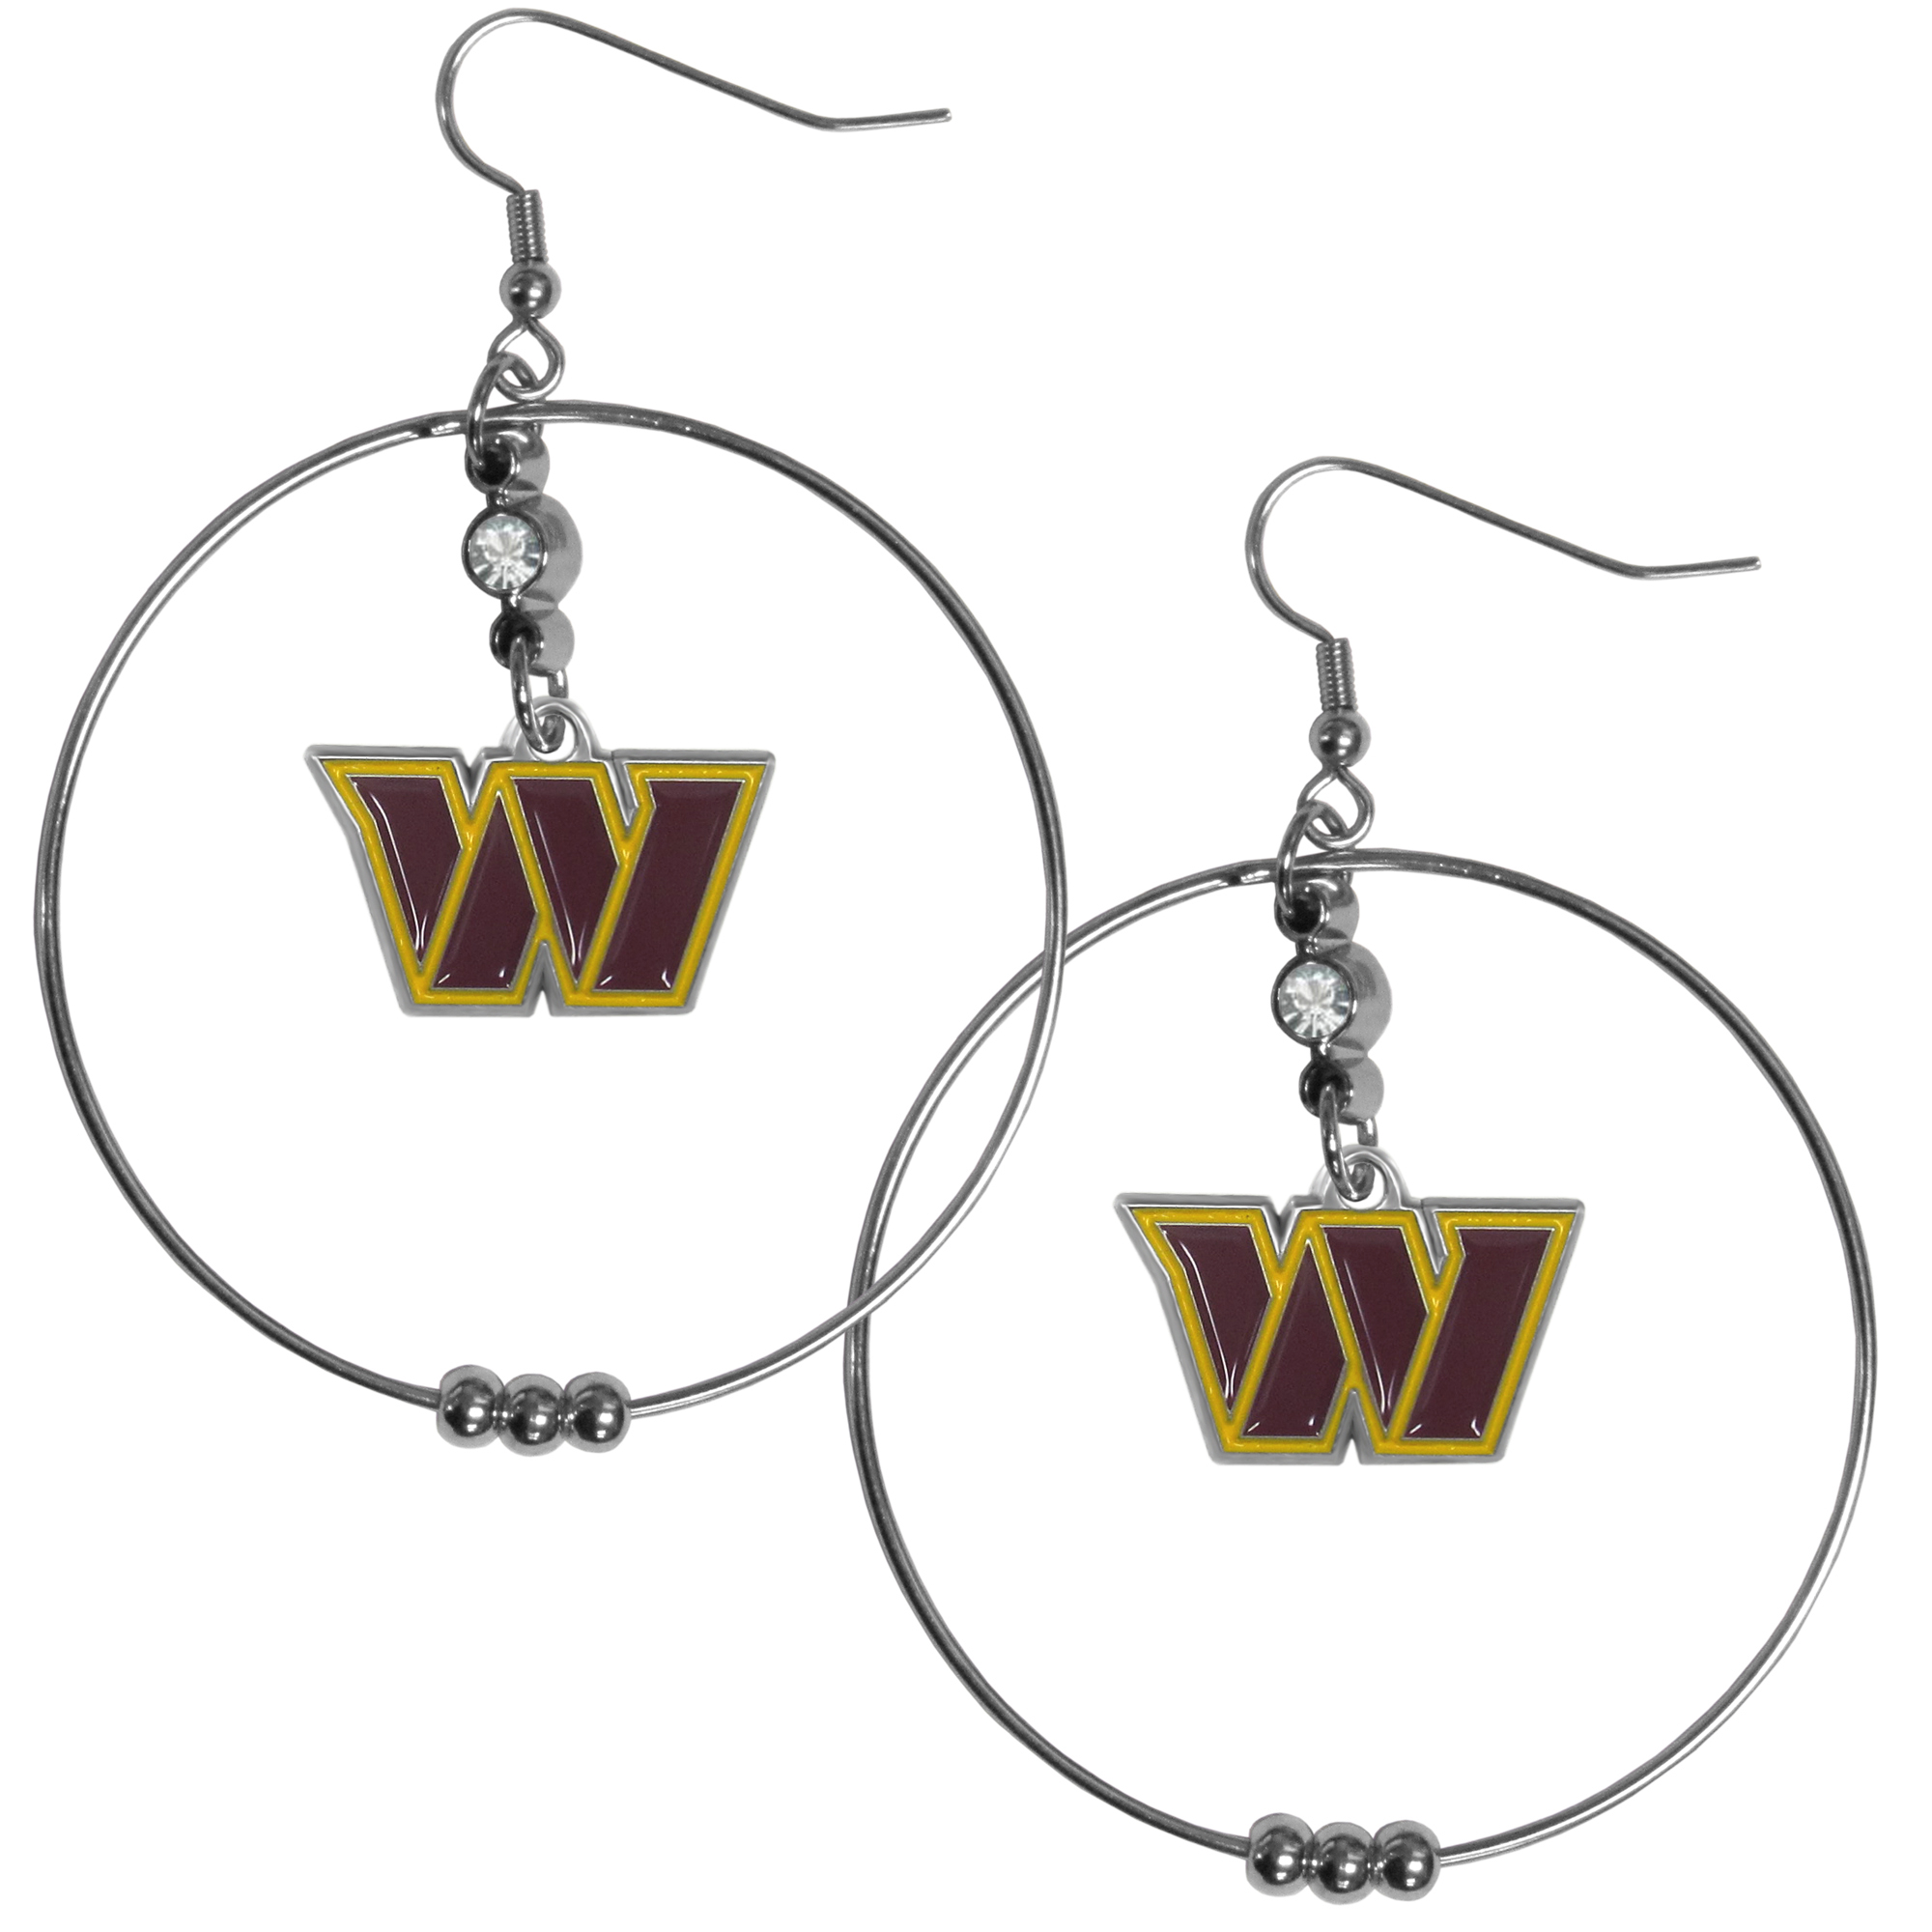 Washington Redskins 2 Inch Hoop Earrings - Our large hoop earrings have a fully cast and enameled Washington Redskins charm with enameled detail and a high polish nickel free chrome finish and rhinestone access. Hypoallergenic fishhook posts.